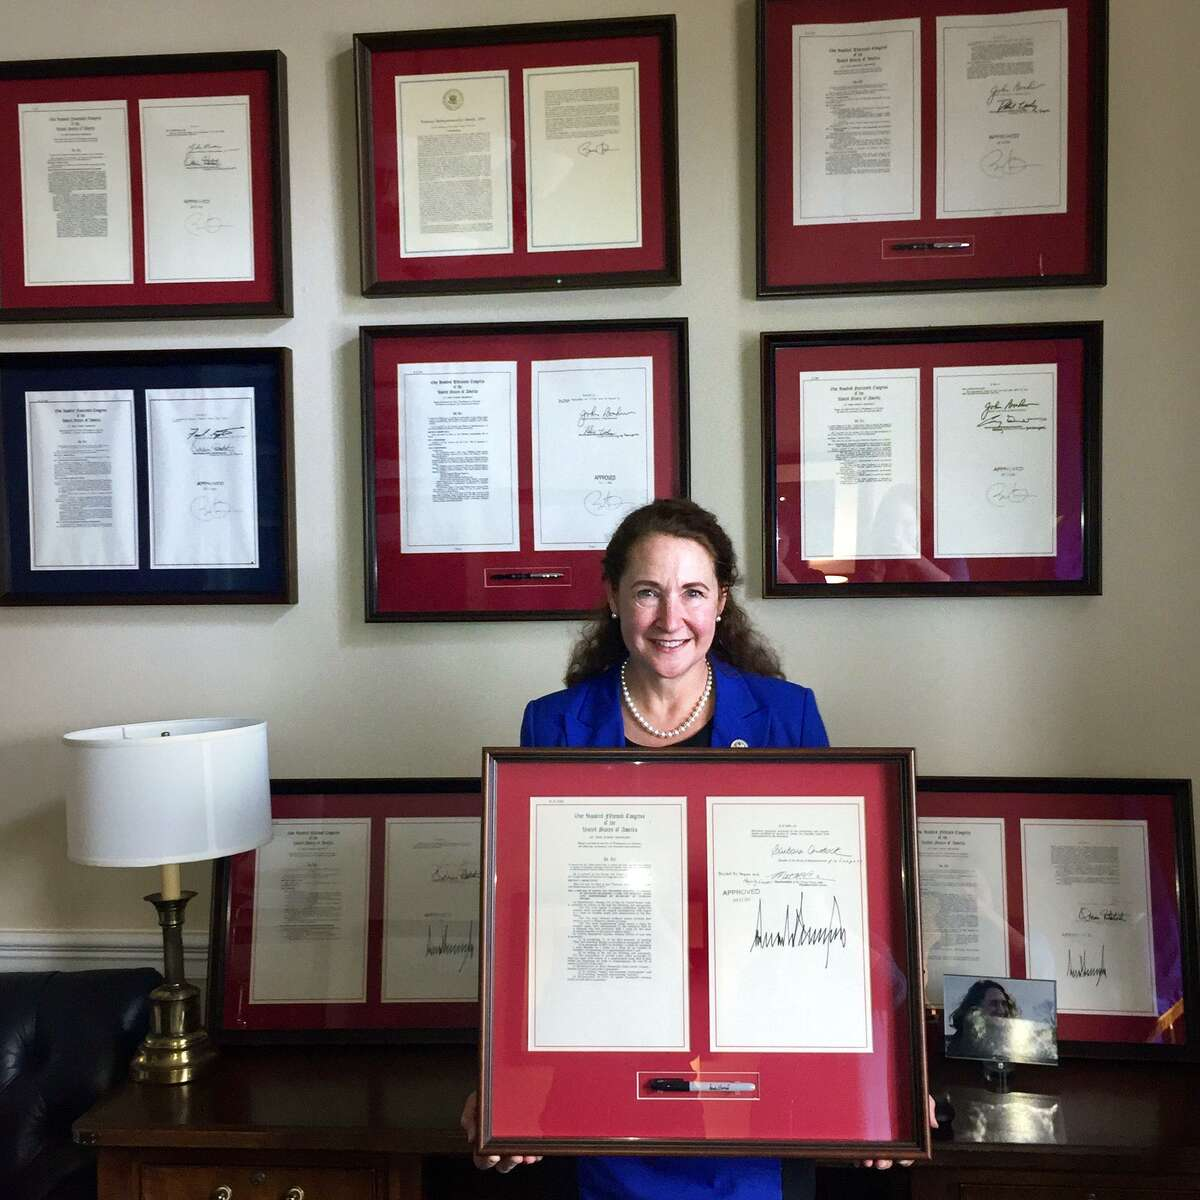 Rep. Elizabeth Esty's office wall features legislation she authored that got signed into law.